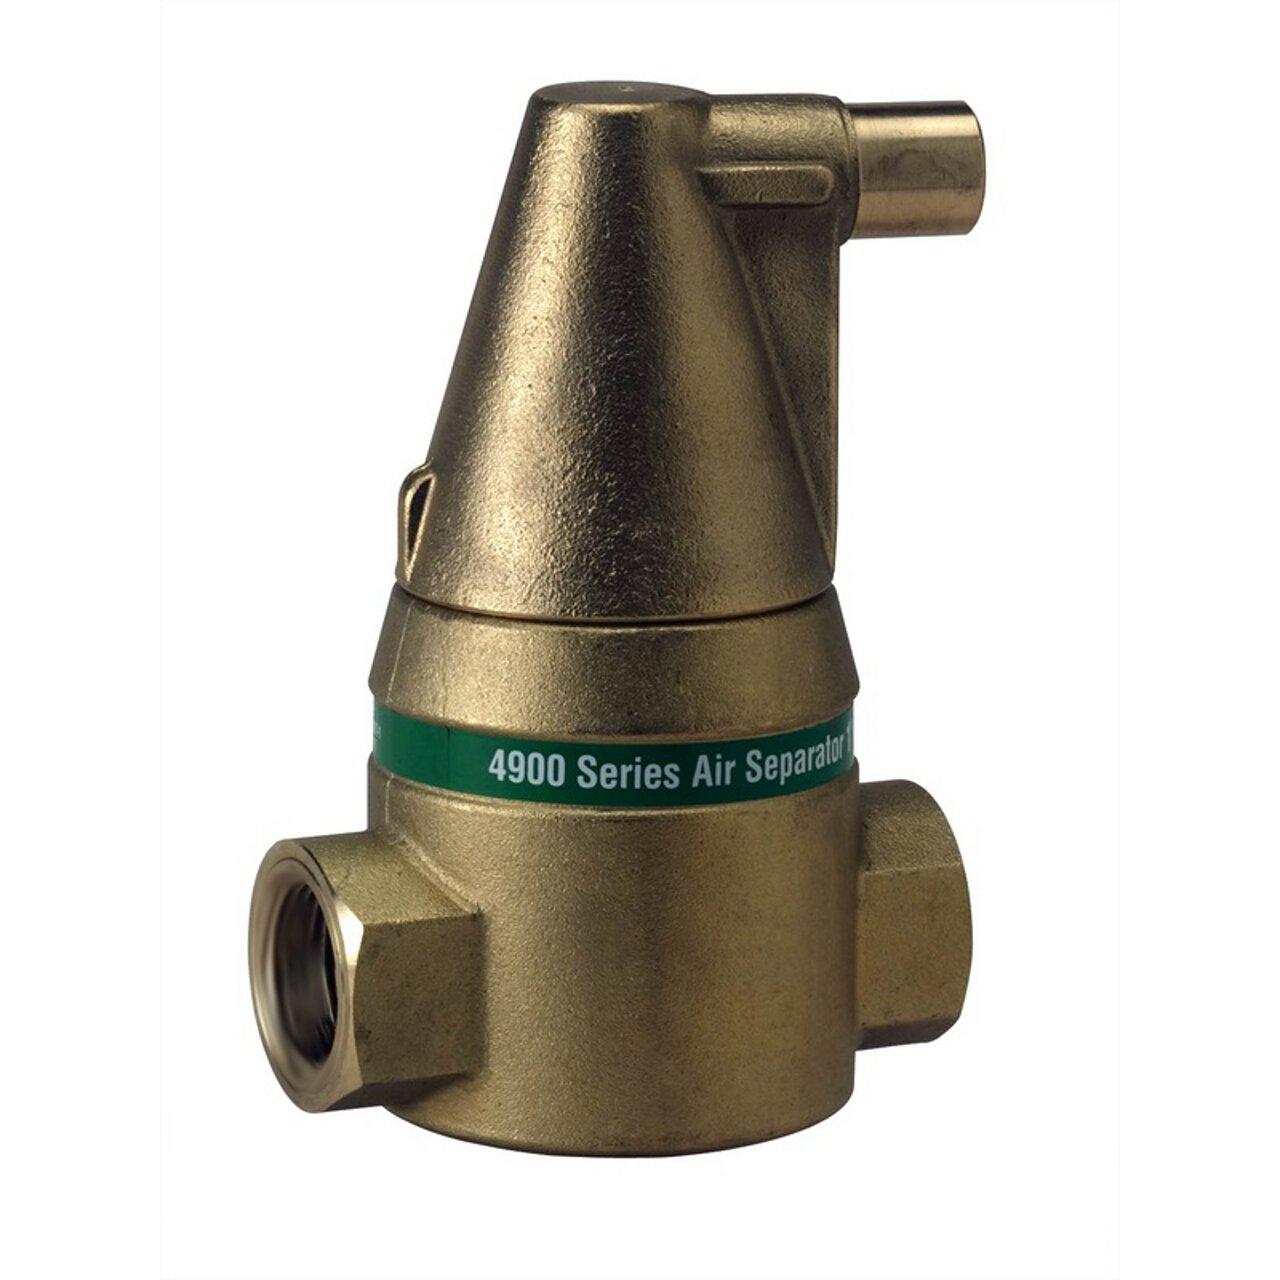 Taco 49075C-1 3/4-Inch Sweat Air Separator, Bronze by Taco